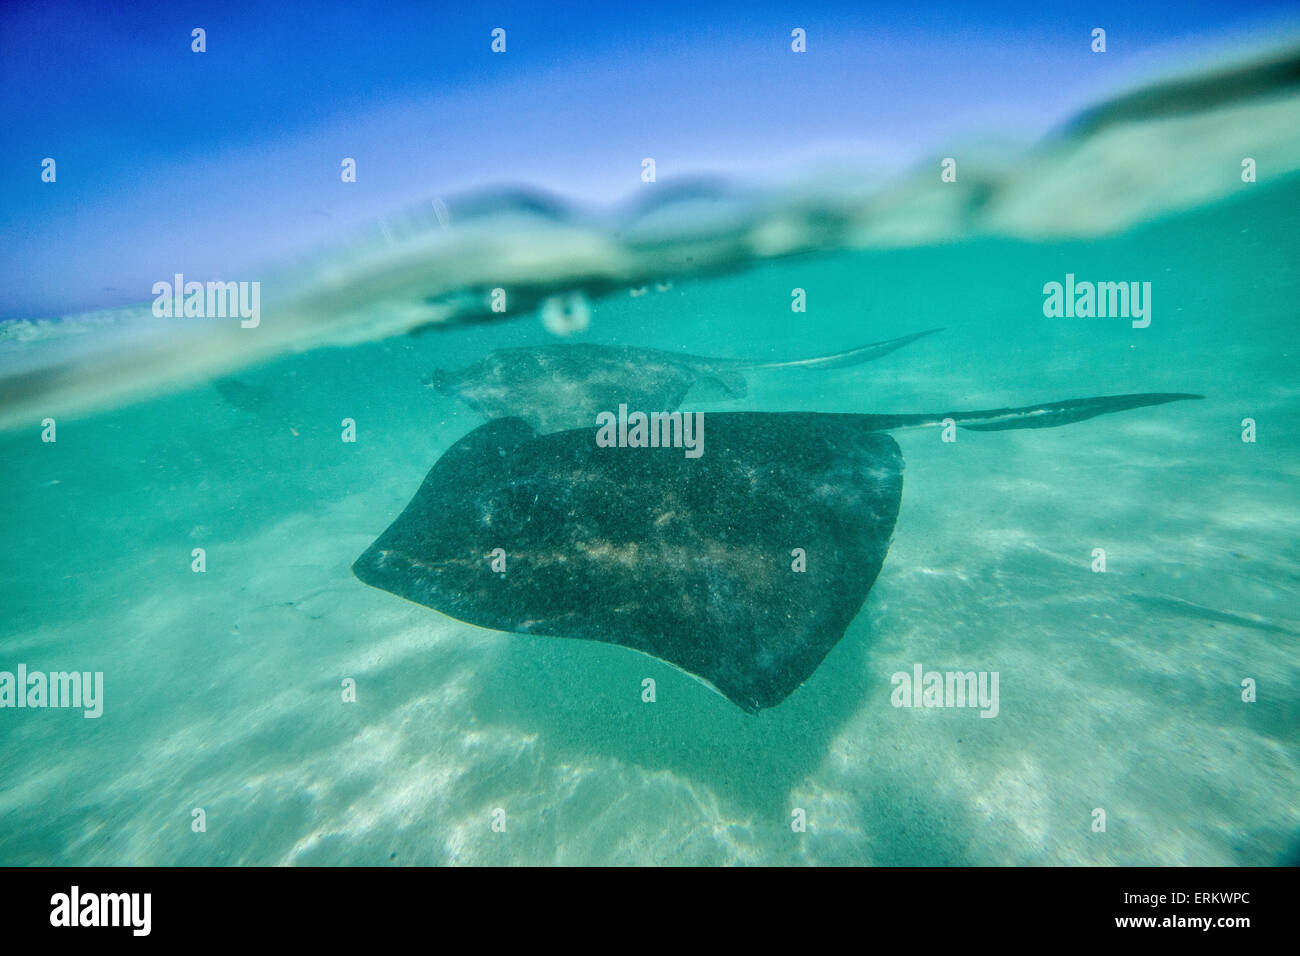 Snap on the water at Stingray City, a reserve hosting tens of stingray circling in the shallow lagoon, Antigua, - Stock Image